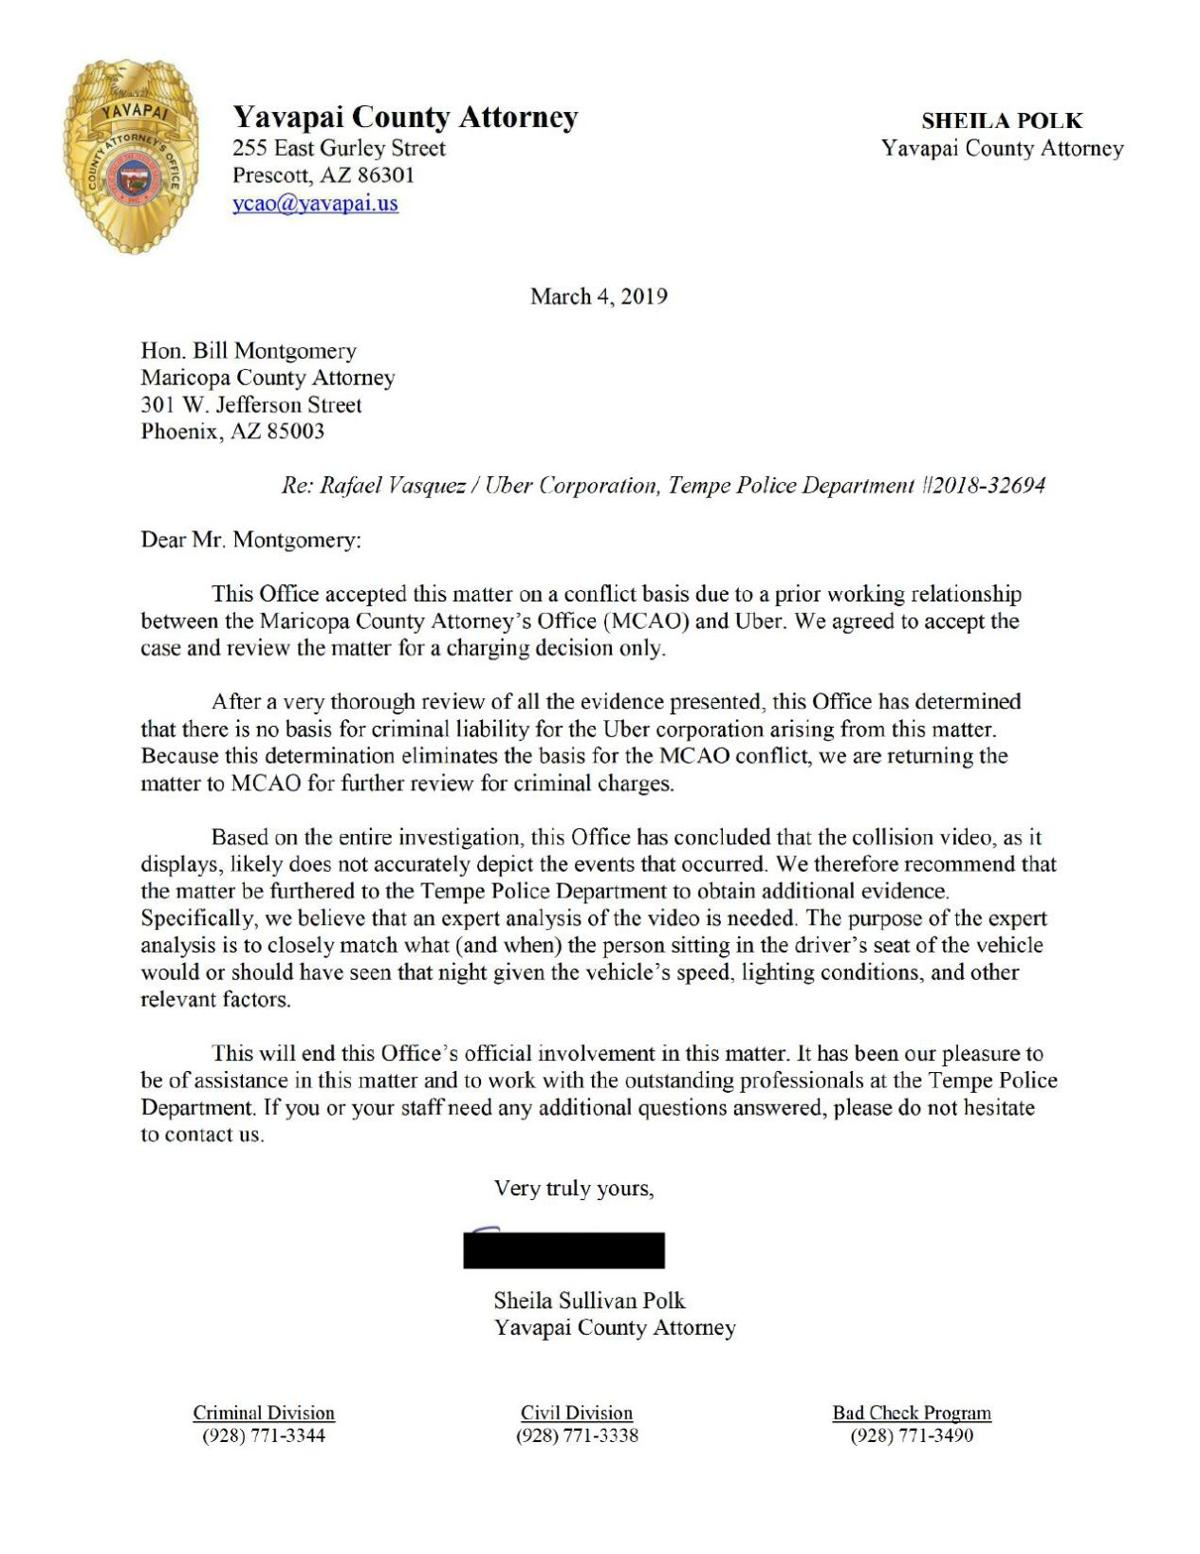 PDF: Yavapai County attorney's letter to Maricopa County attorney